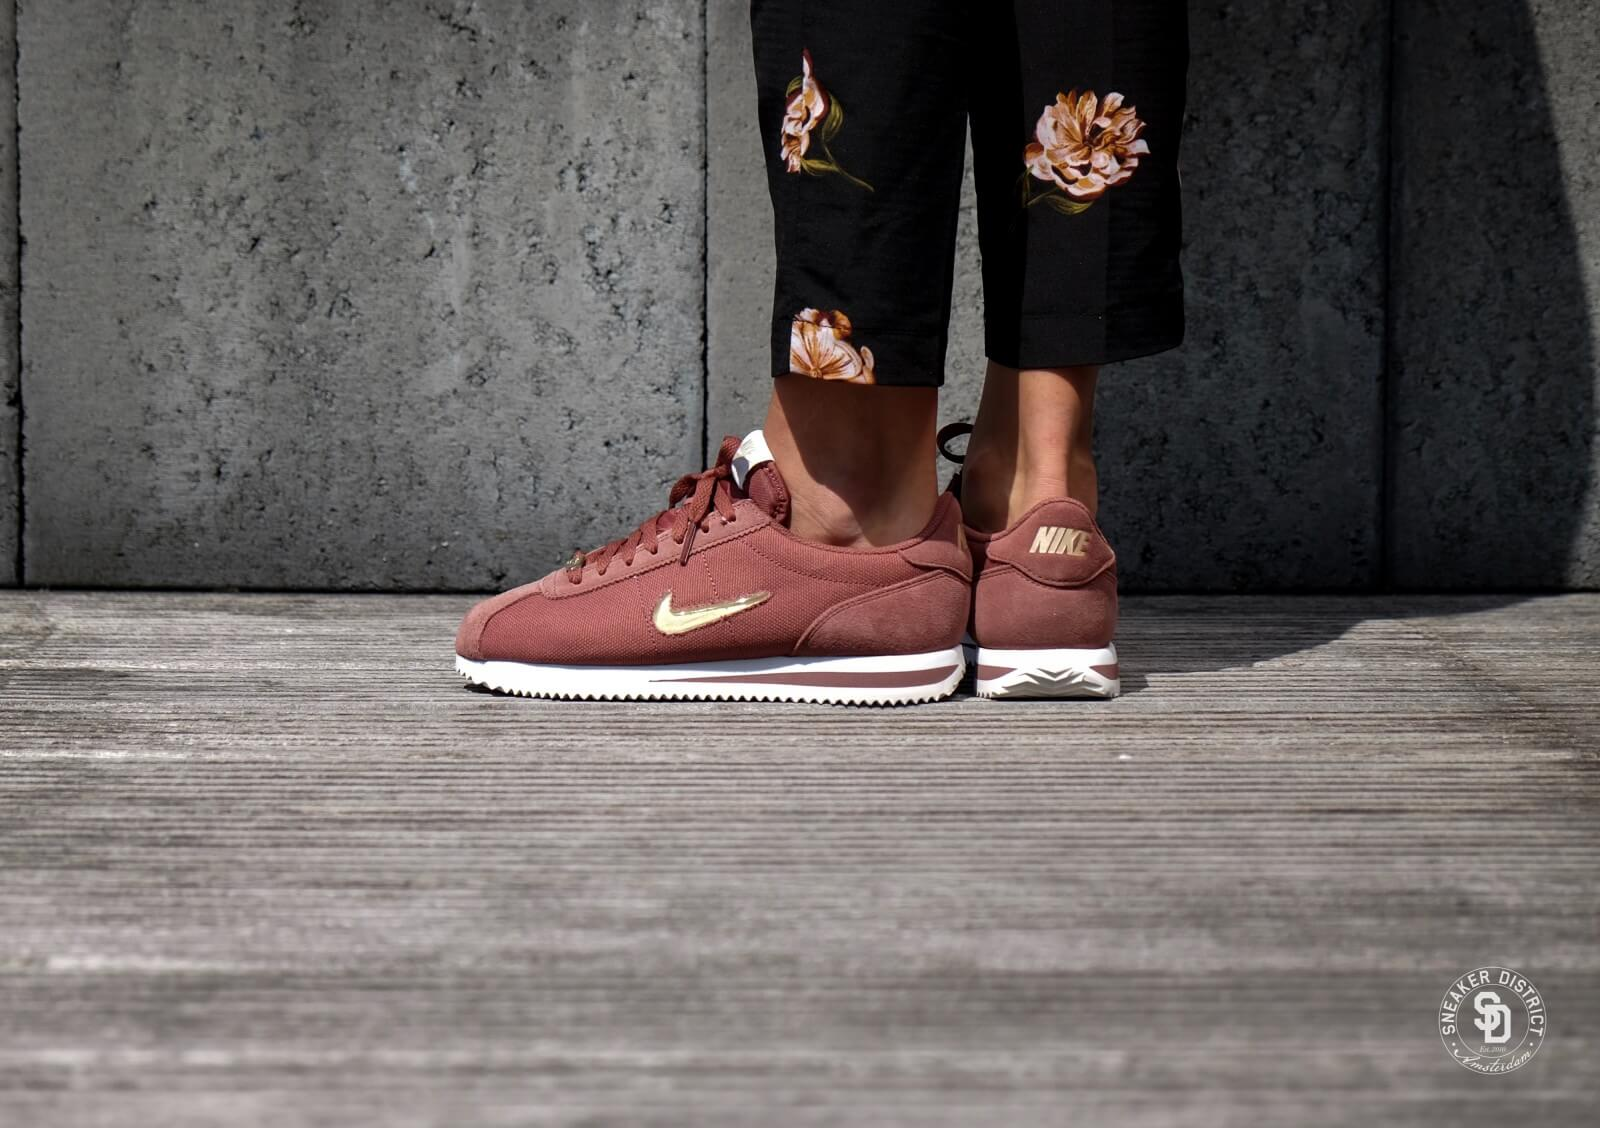 best sneakers 0a72f eb251 usa womens nike cortez gold red ff7c9 8d2ec